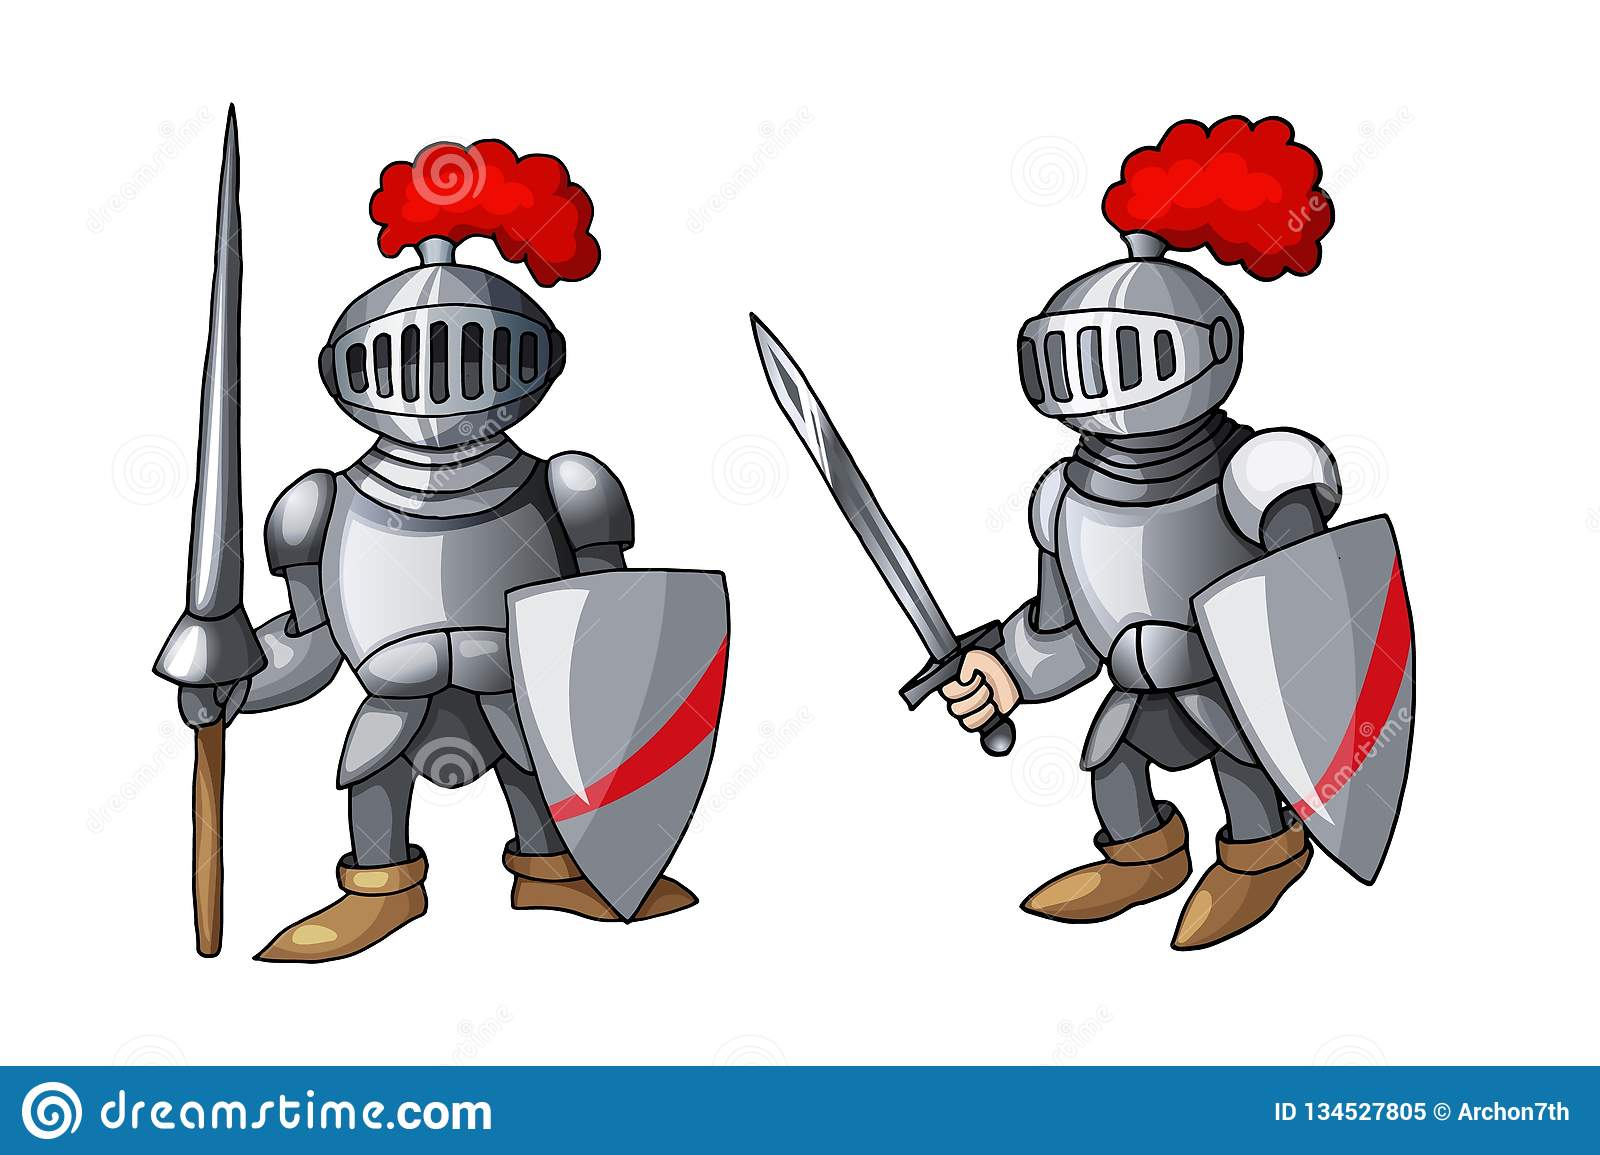 Cartoon Medieval Knight With Shield And Sword, Isolated On White.